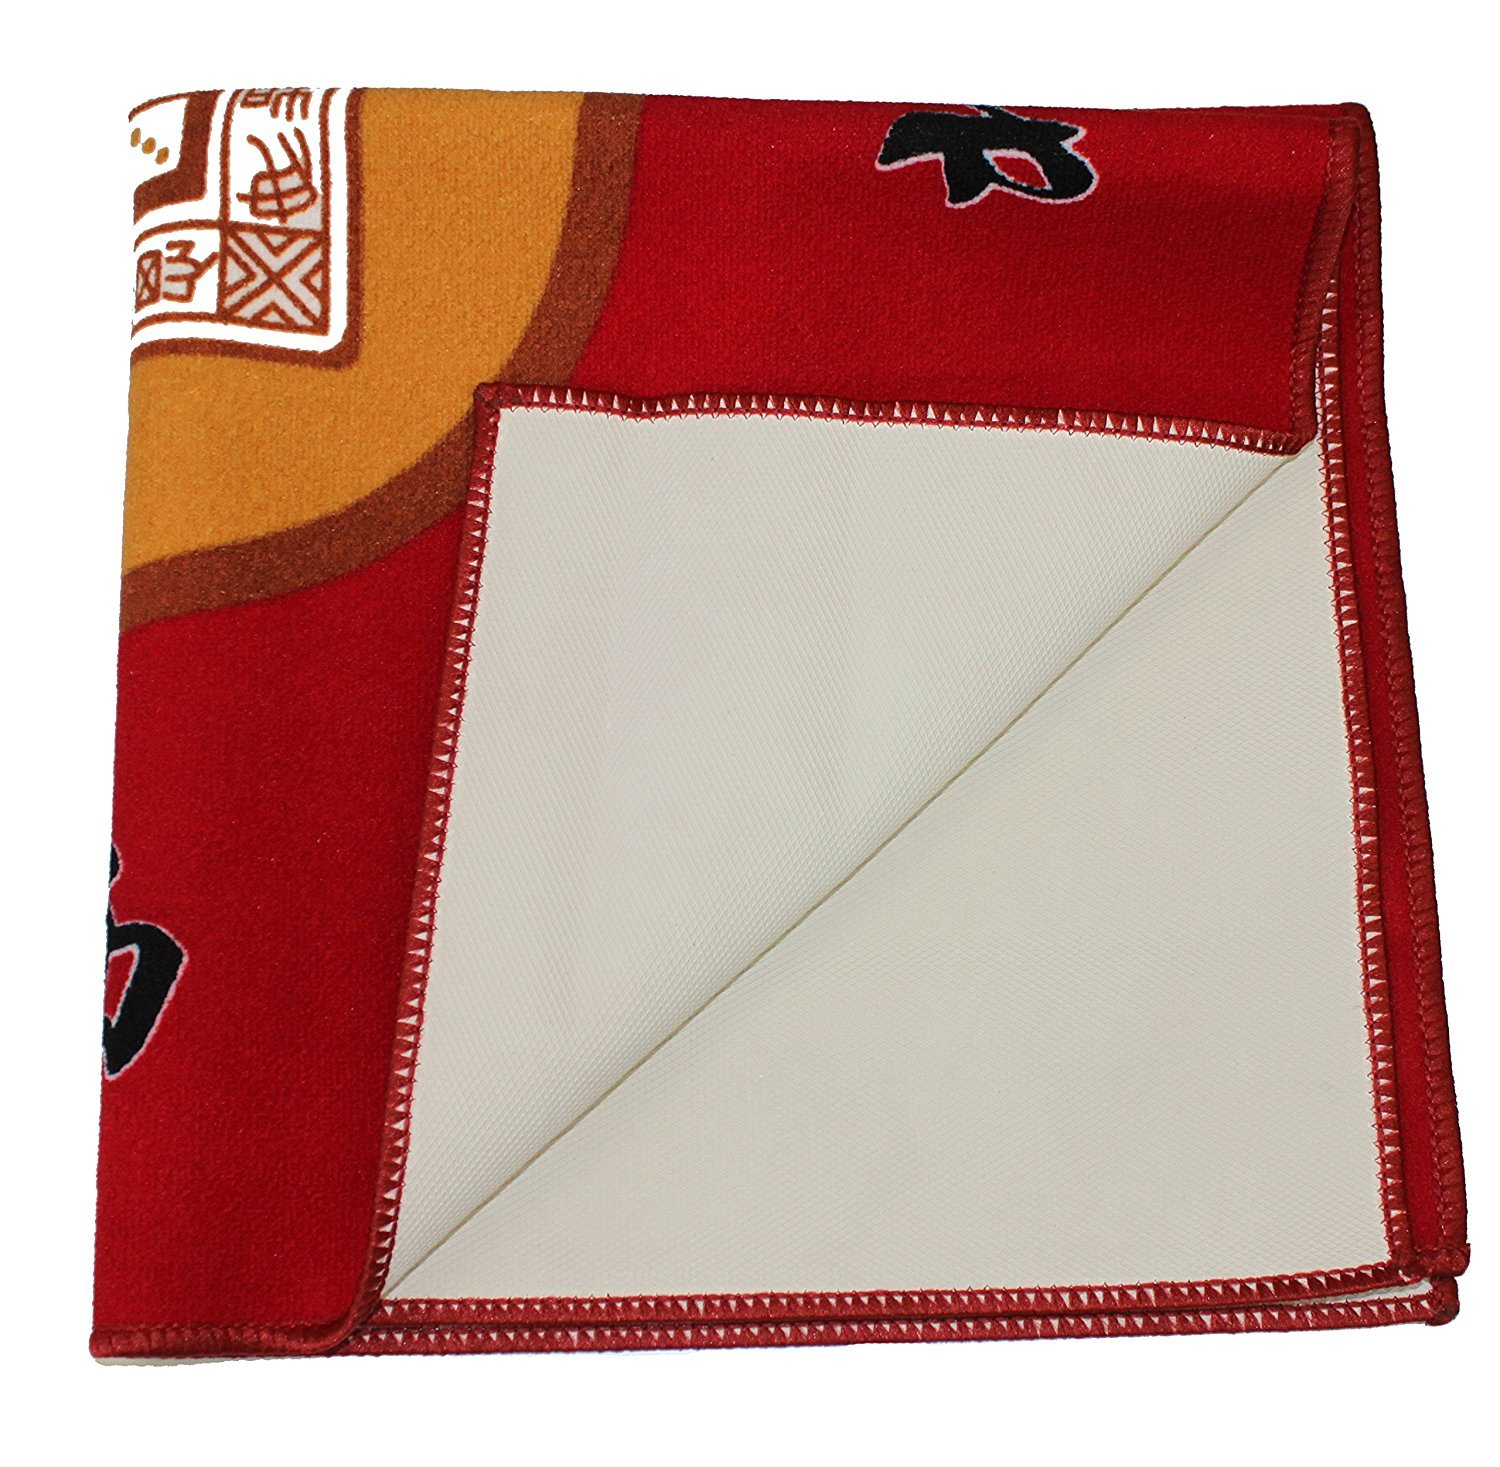 31.5'' Table Cover - Slip Resistant Mahjong Game / Poker / Dominos / Card Tablecover Table Top Mat - Red by We pay your sales tax (Image #3)